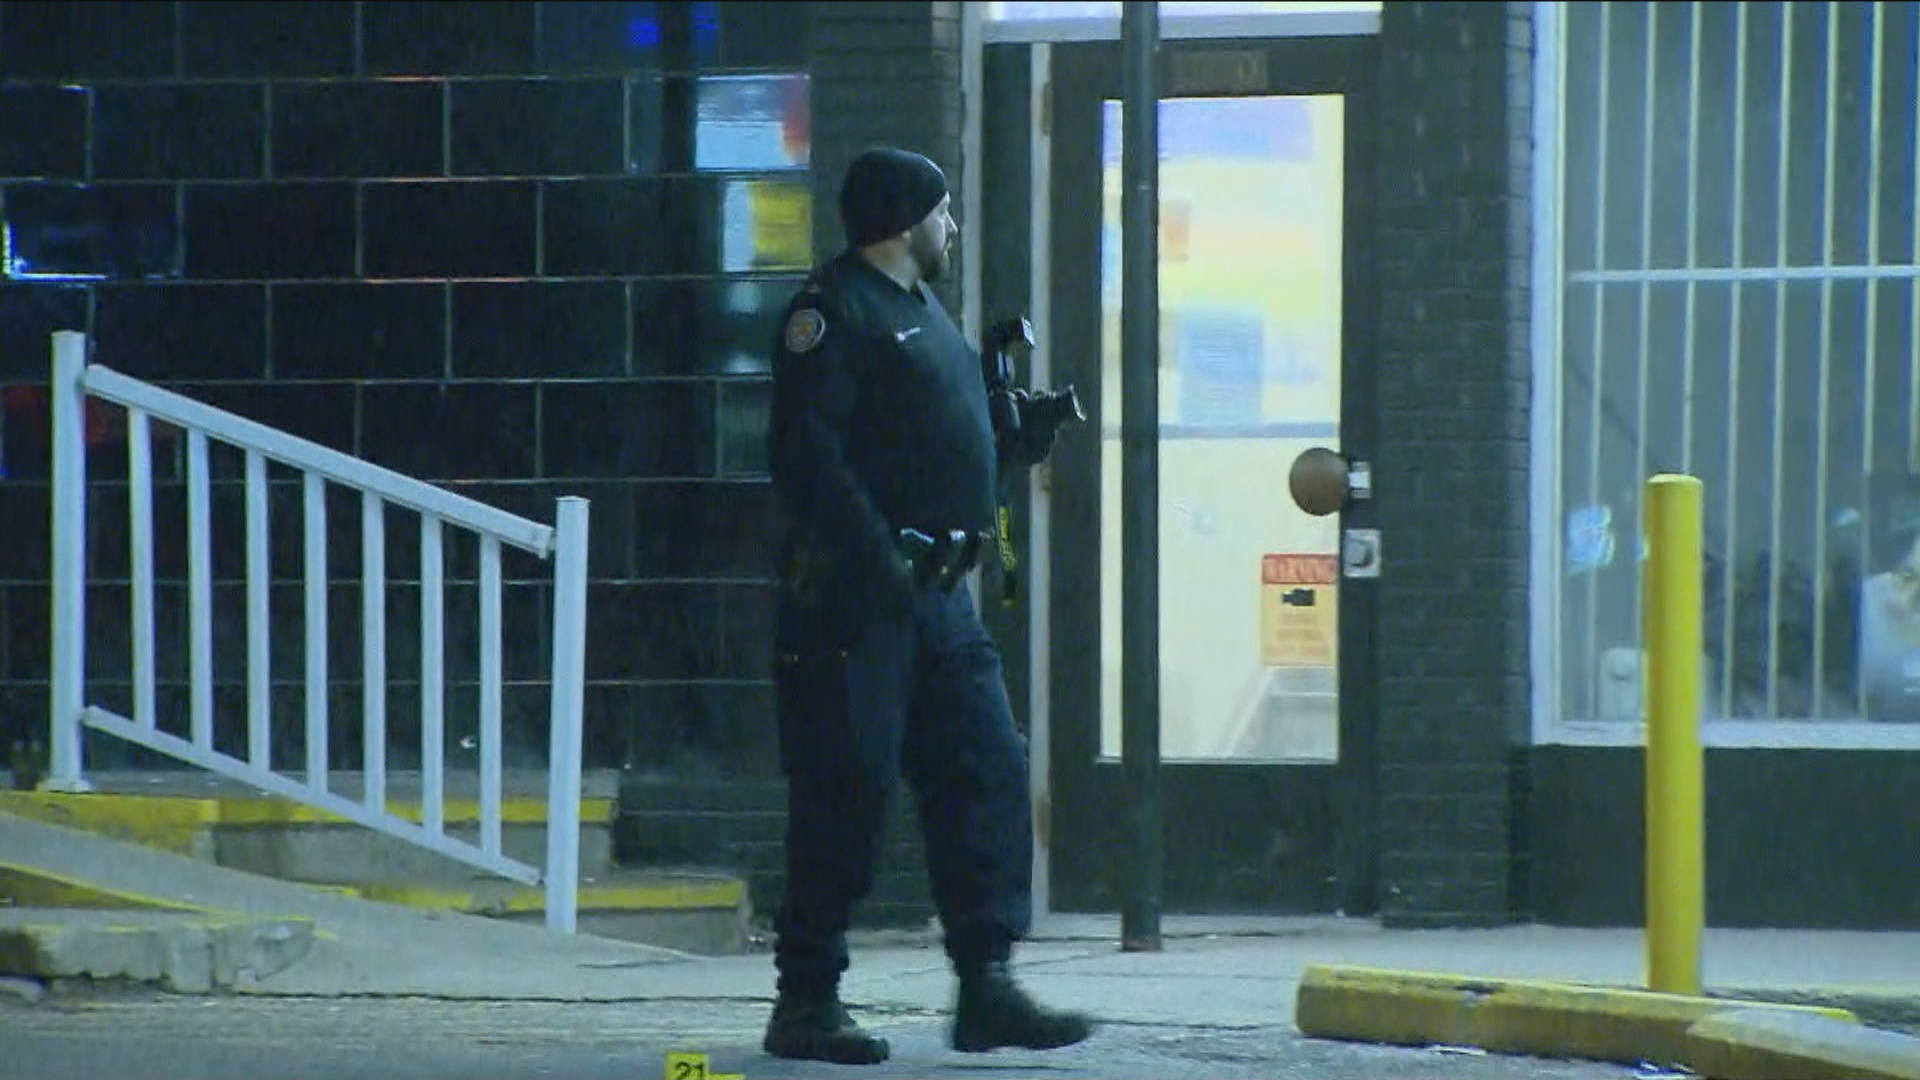 Man seriously injured after multiple shots fired at Woburn plaza